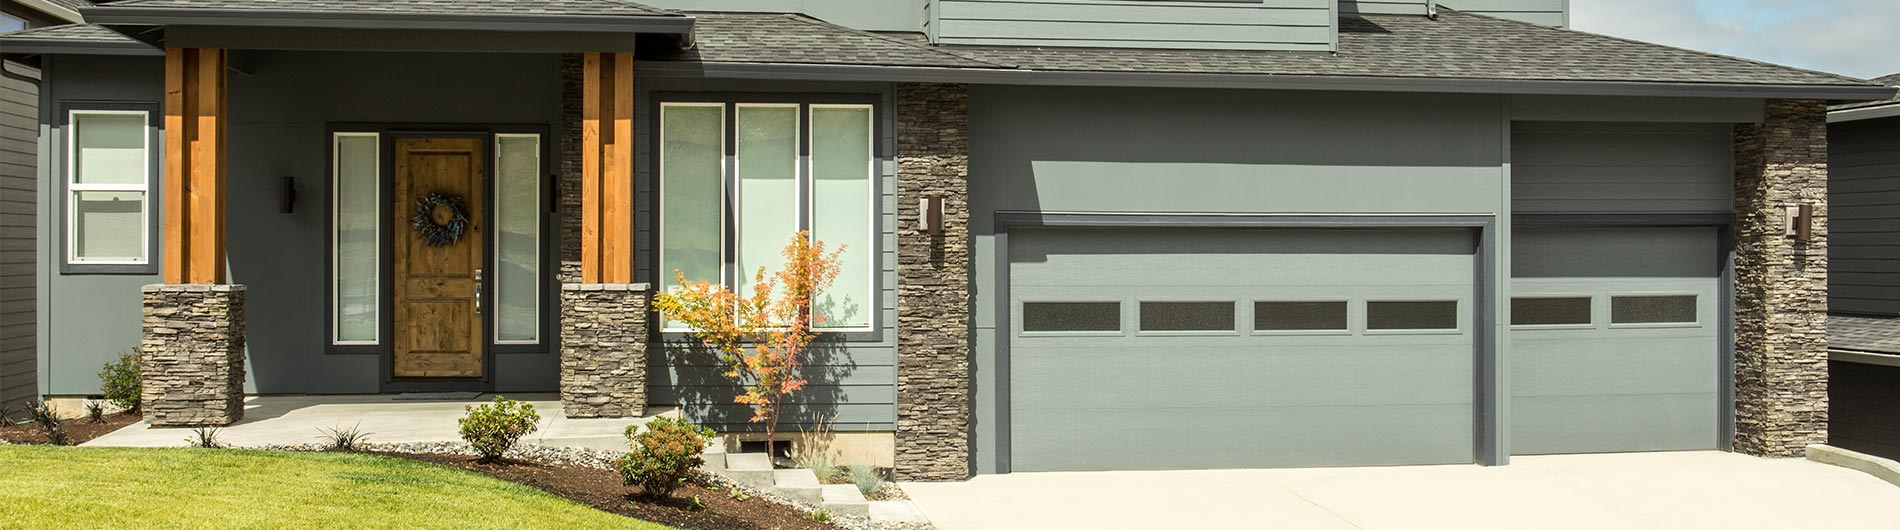 9605-Steel-Garage-Door-Contemporary-Custom-Paint-Clear-III